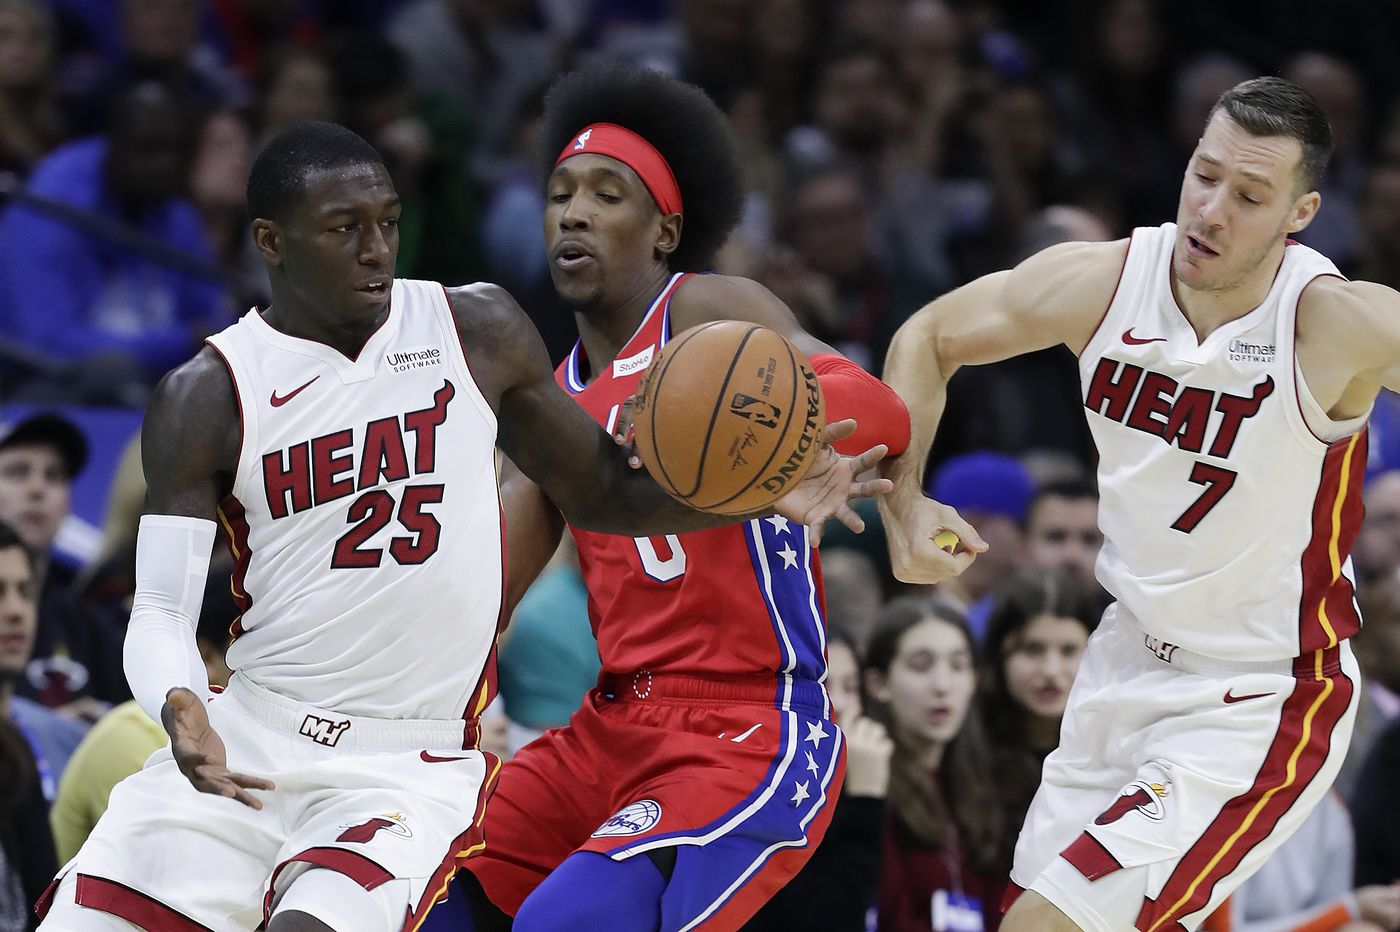 Sixers' Josh Richardson is practicing caution with his latest injury